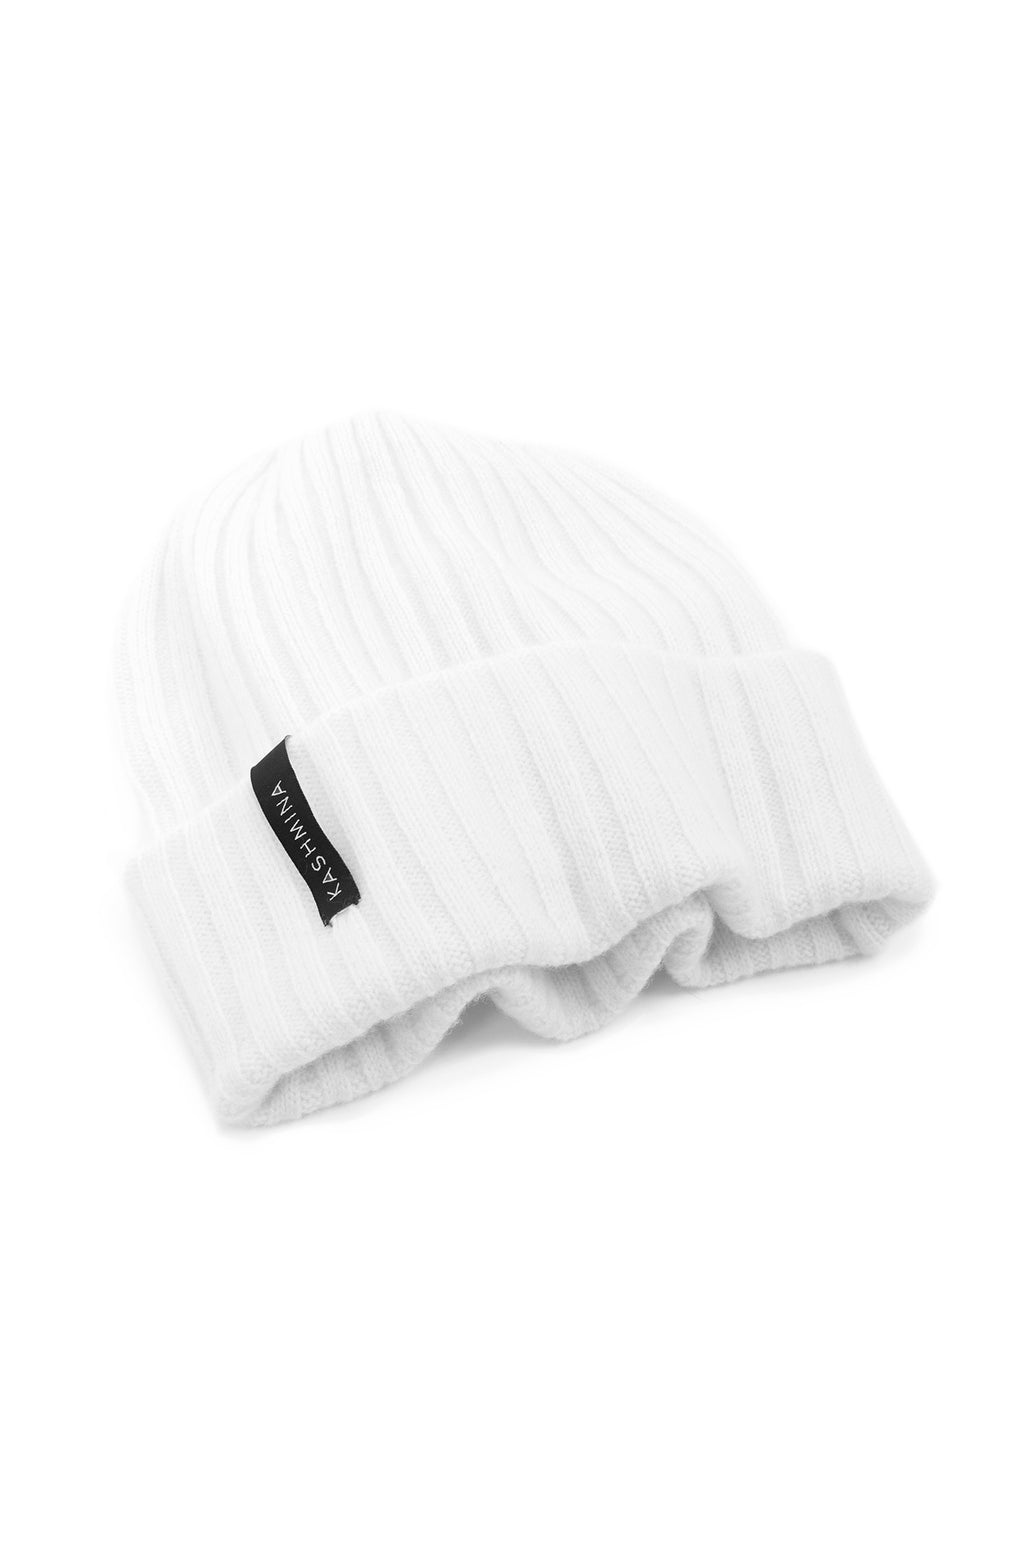 cashmere cap Fat rib in 100% cashmere by Kashmina